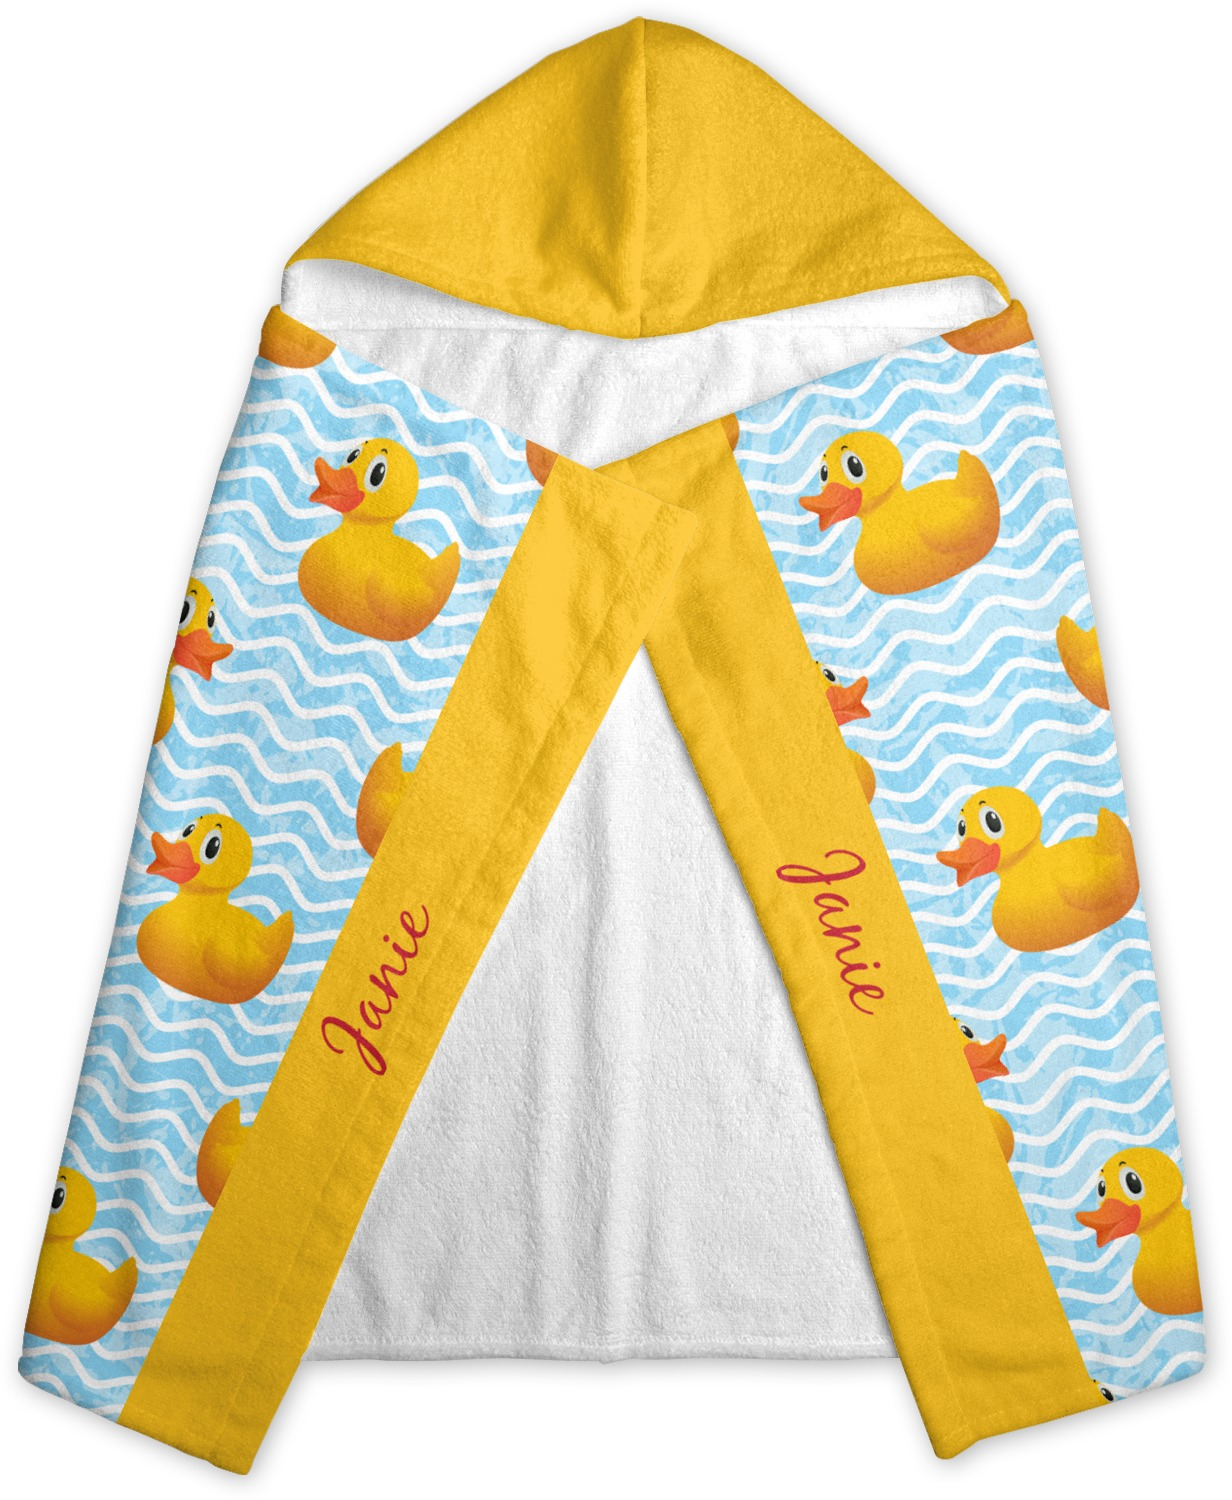 Rubber Duckie Kids Hooded Towel Personalized